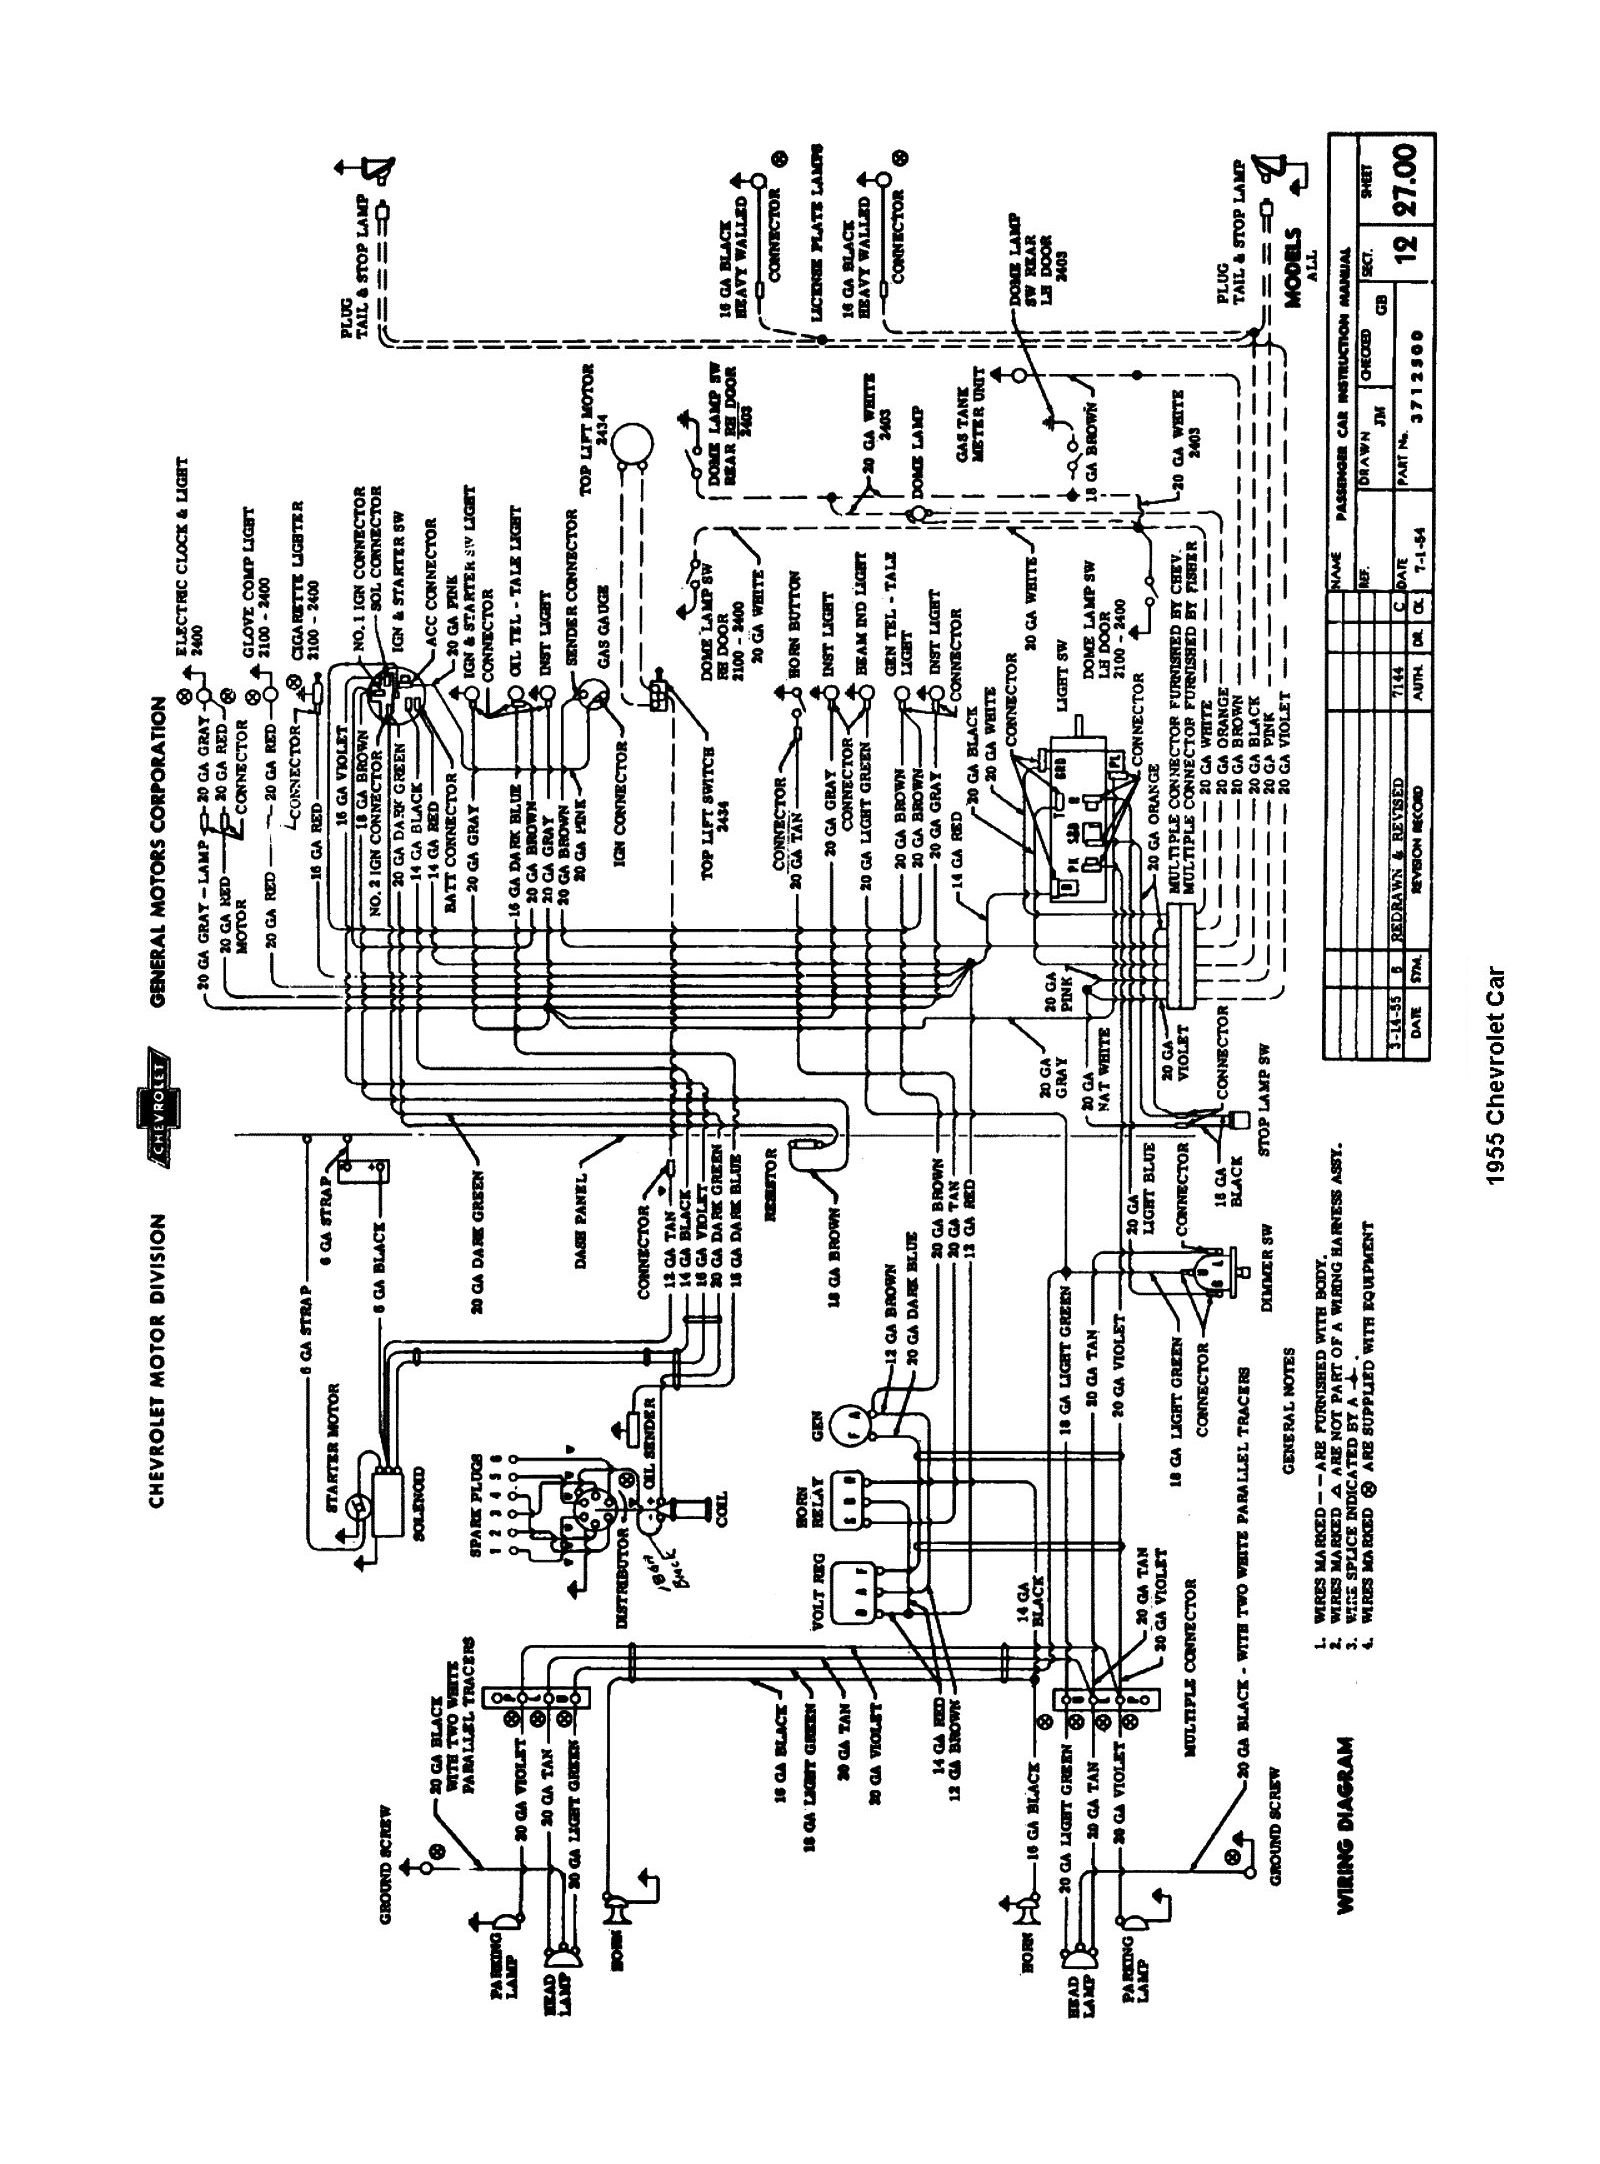 Wiring Diagram For A 1937 Chevy Truck Libraries Kia Sorento D4cb Engine Diagrams Plymouth Data Schema1955 Simple Ignition